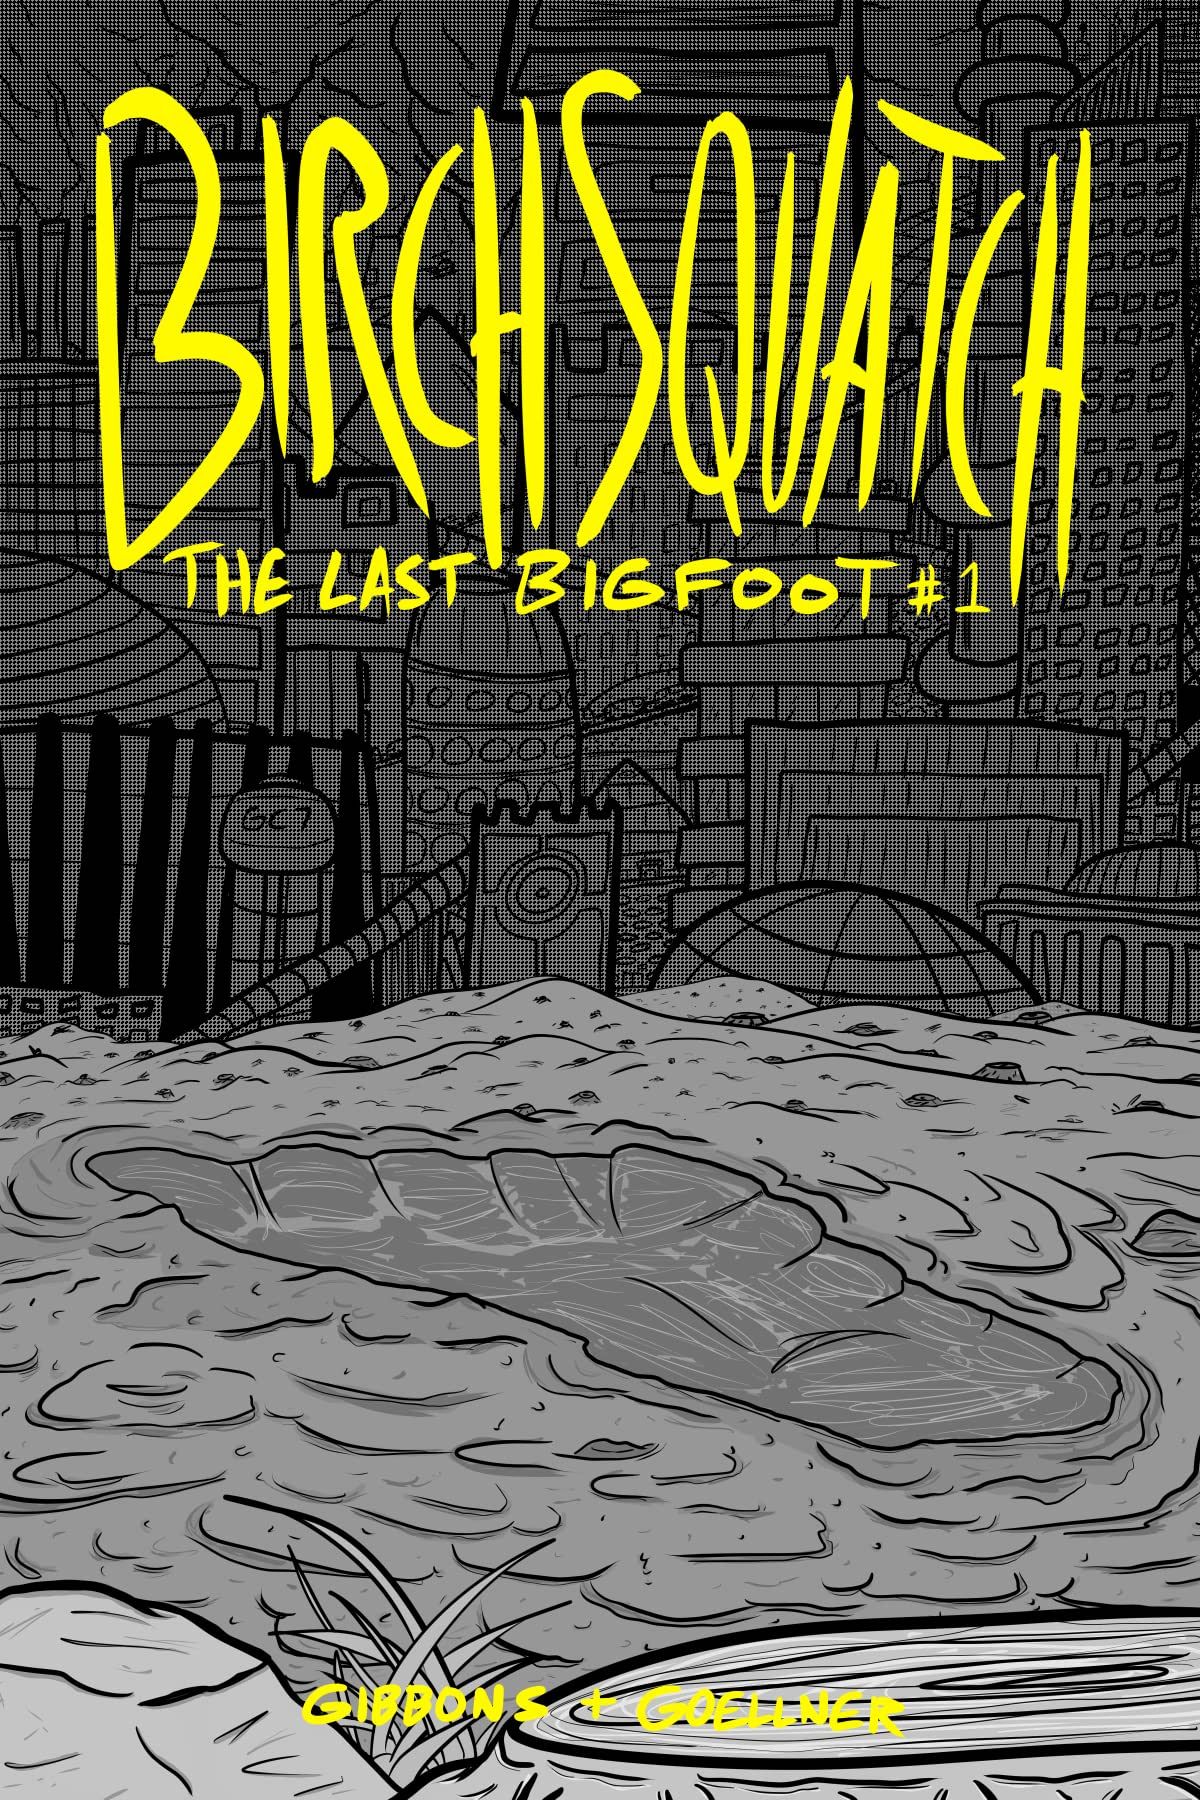 Birch Squatch: The Last Bigfoot #1